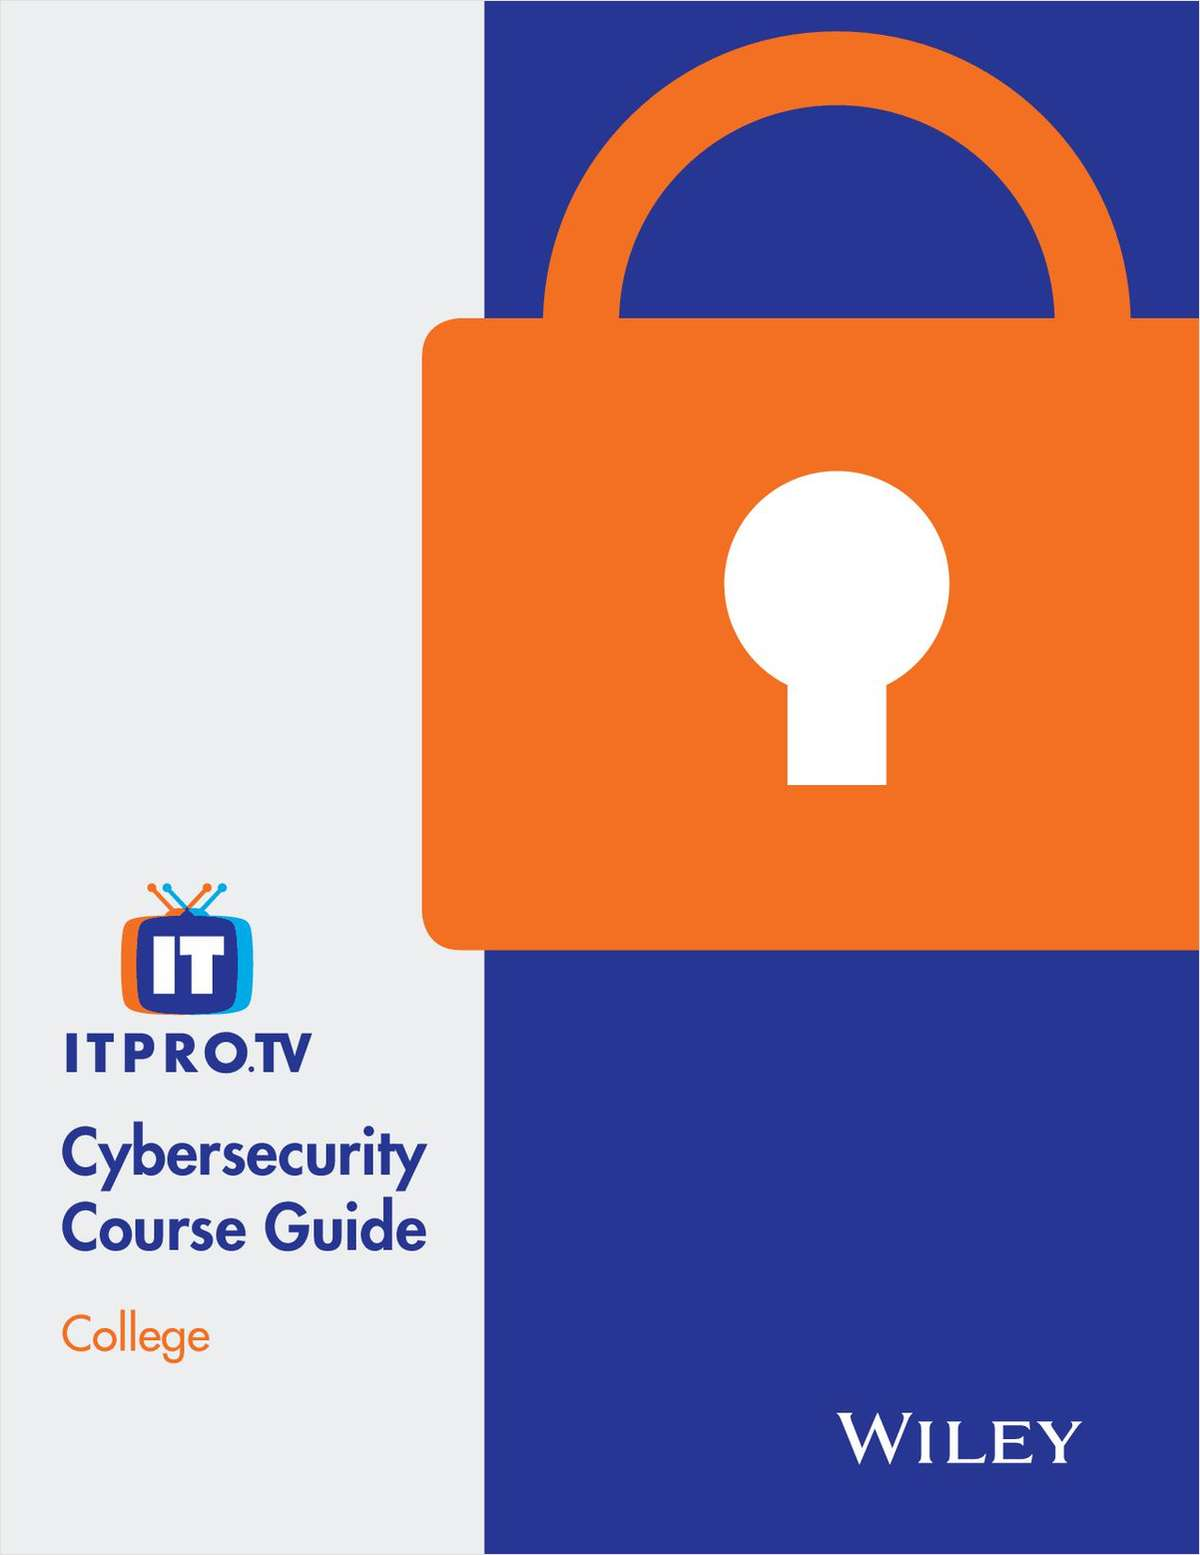 Cybersecurity textbooks quickly become outdated, we don't